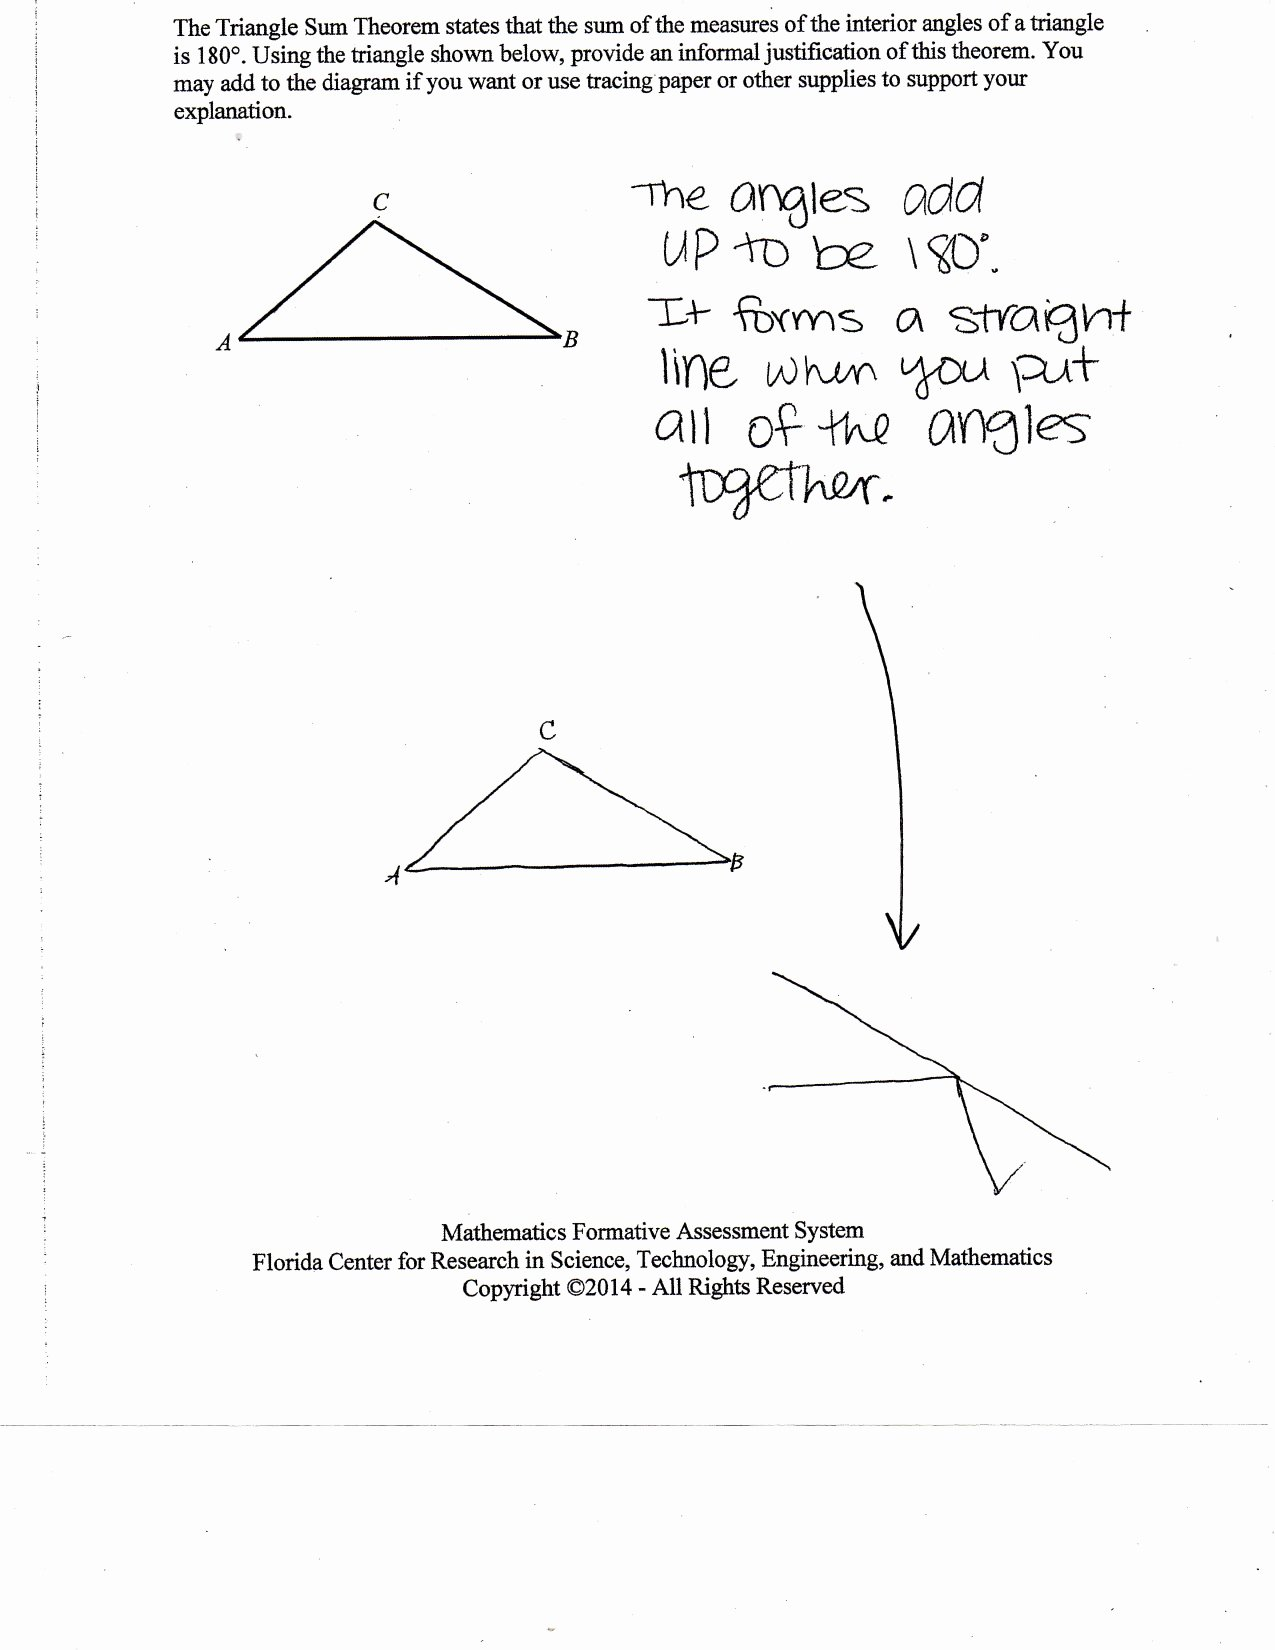 Triangle Angle Sum Worksheet Lovely Justifying the Triangle Sum theorem